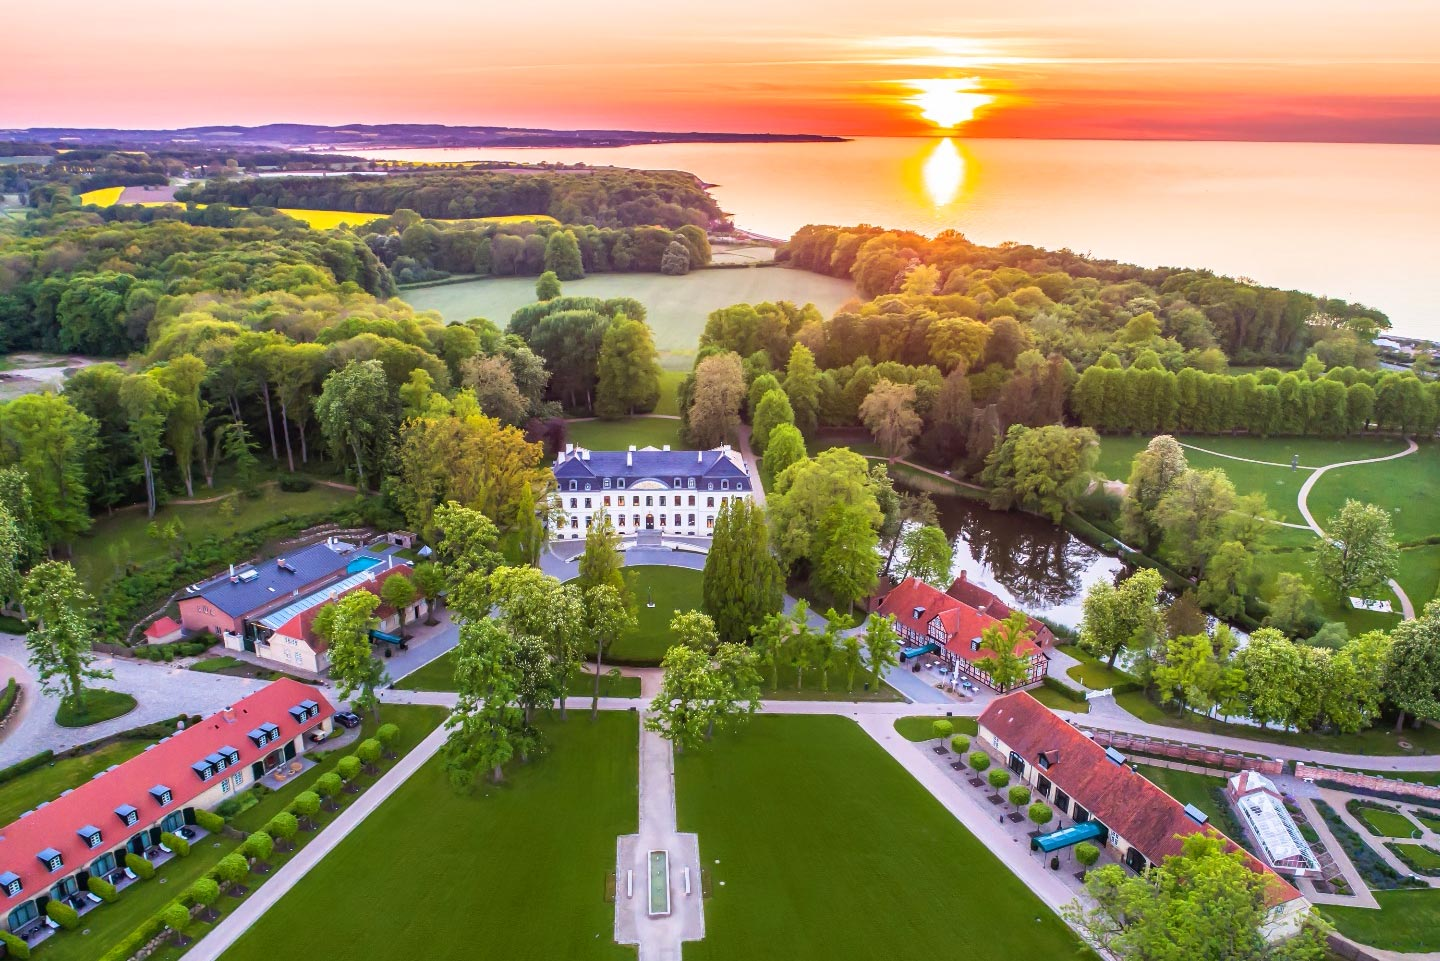 Weissenhaus Grand Village Resort & Spa am Meer: Gewinner der KategorieKulinarik © Wellness Heaven